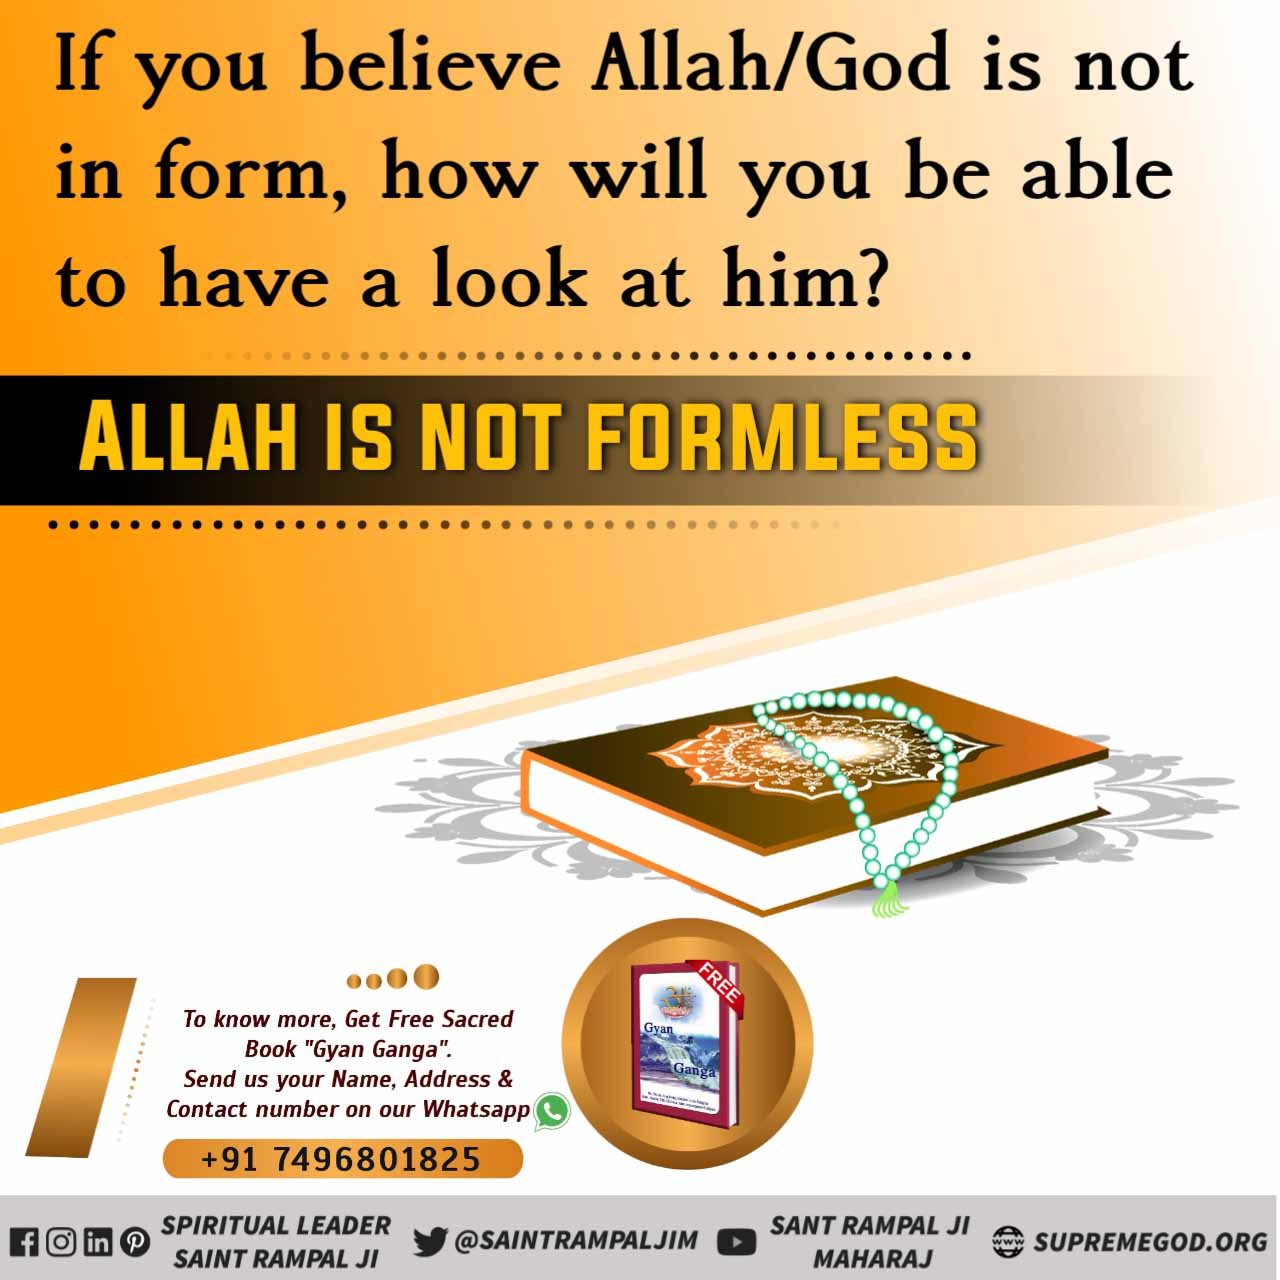 #Allah_IsNot_Formless Photo,#Allah_IsNot_Formless Twitter Trend : Most Popular Tweets